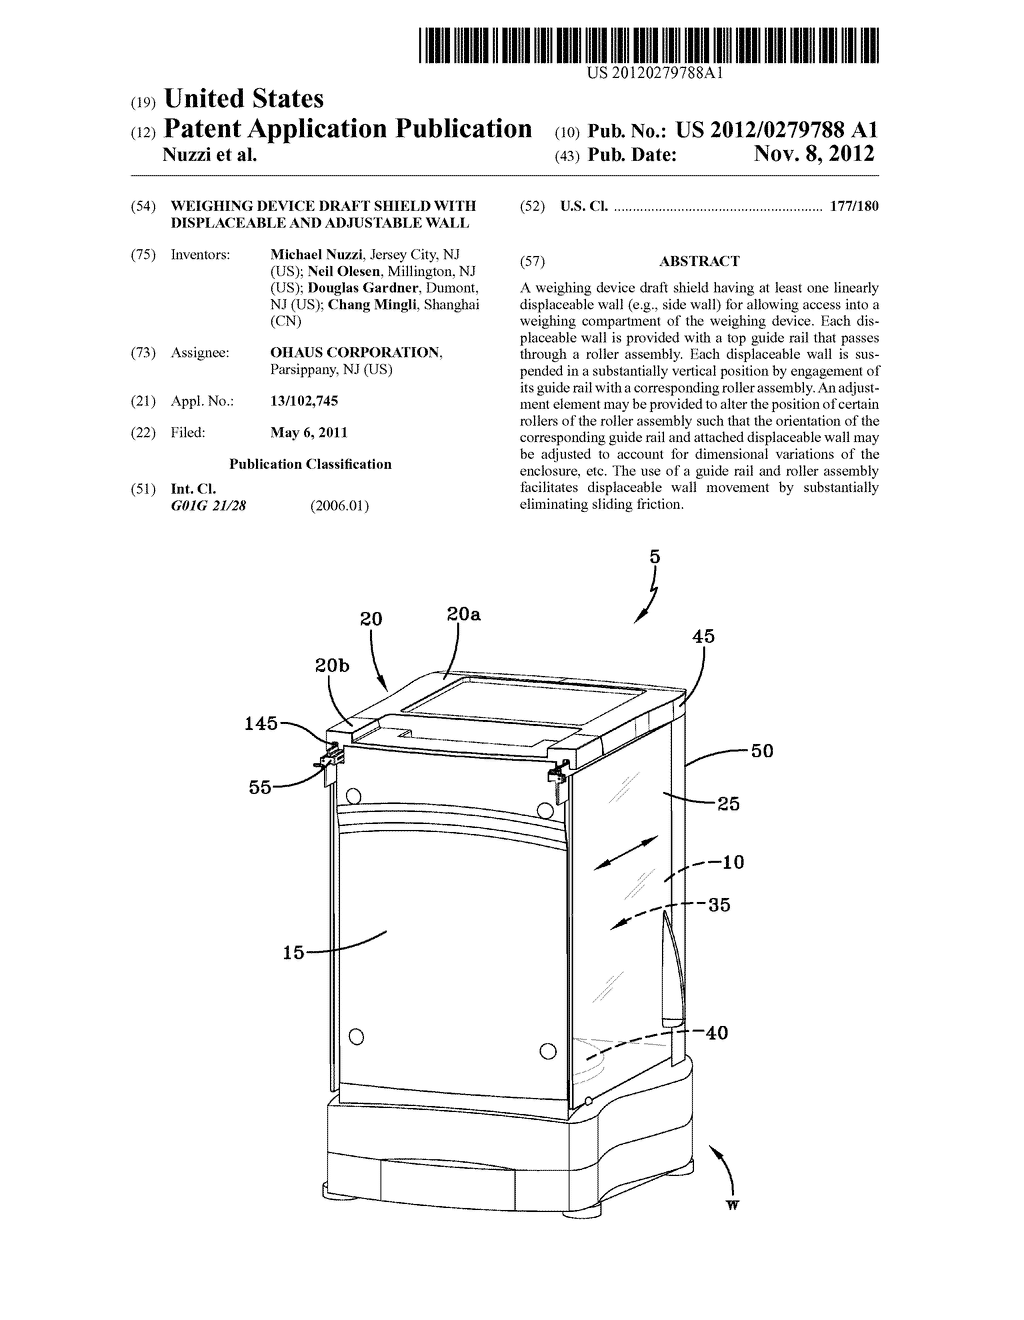 WEIGHING DEVICE DRAFT SHIELD WITH DISPLACEABLE AND ADJUSTABLE WALL - diagram, schematic, and image 01